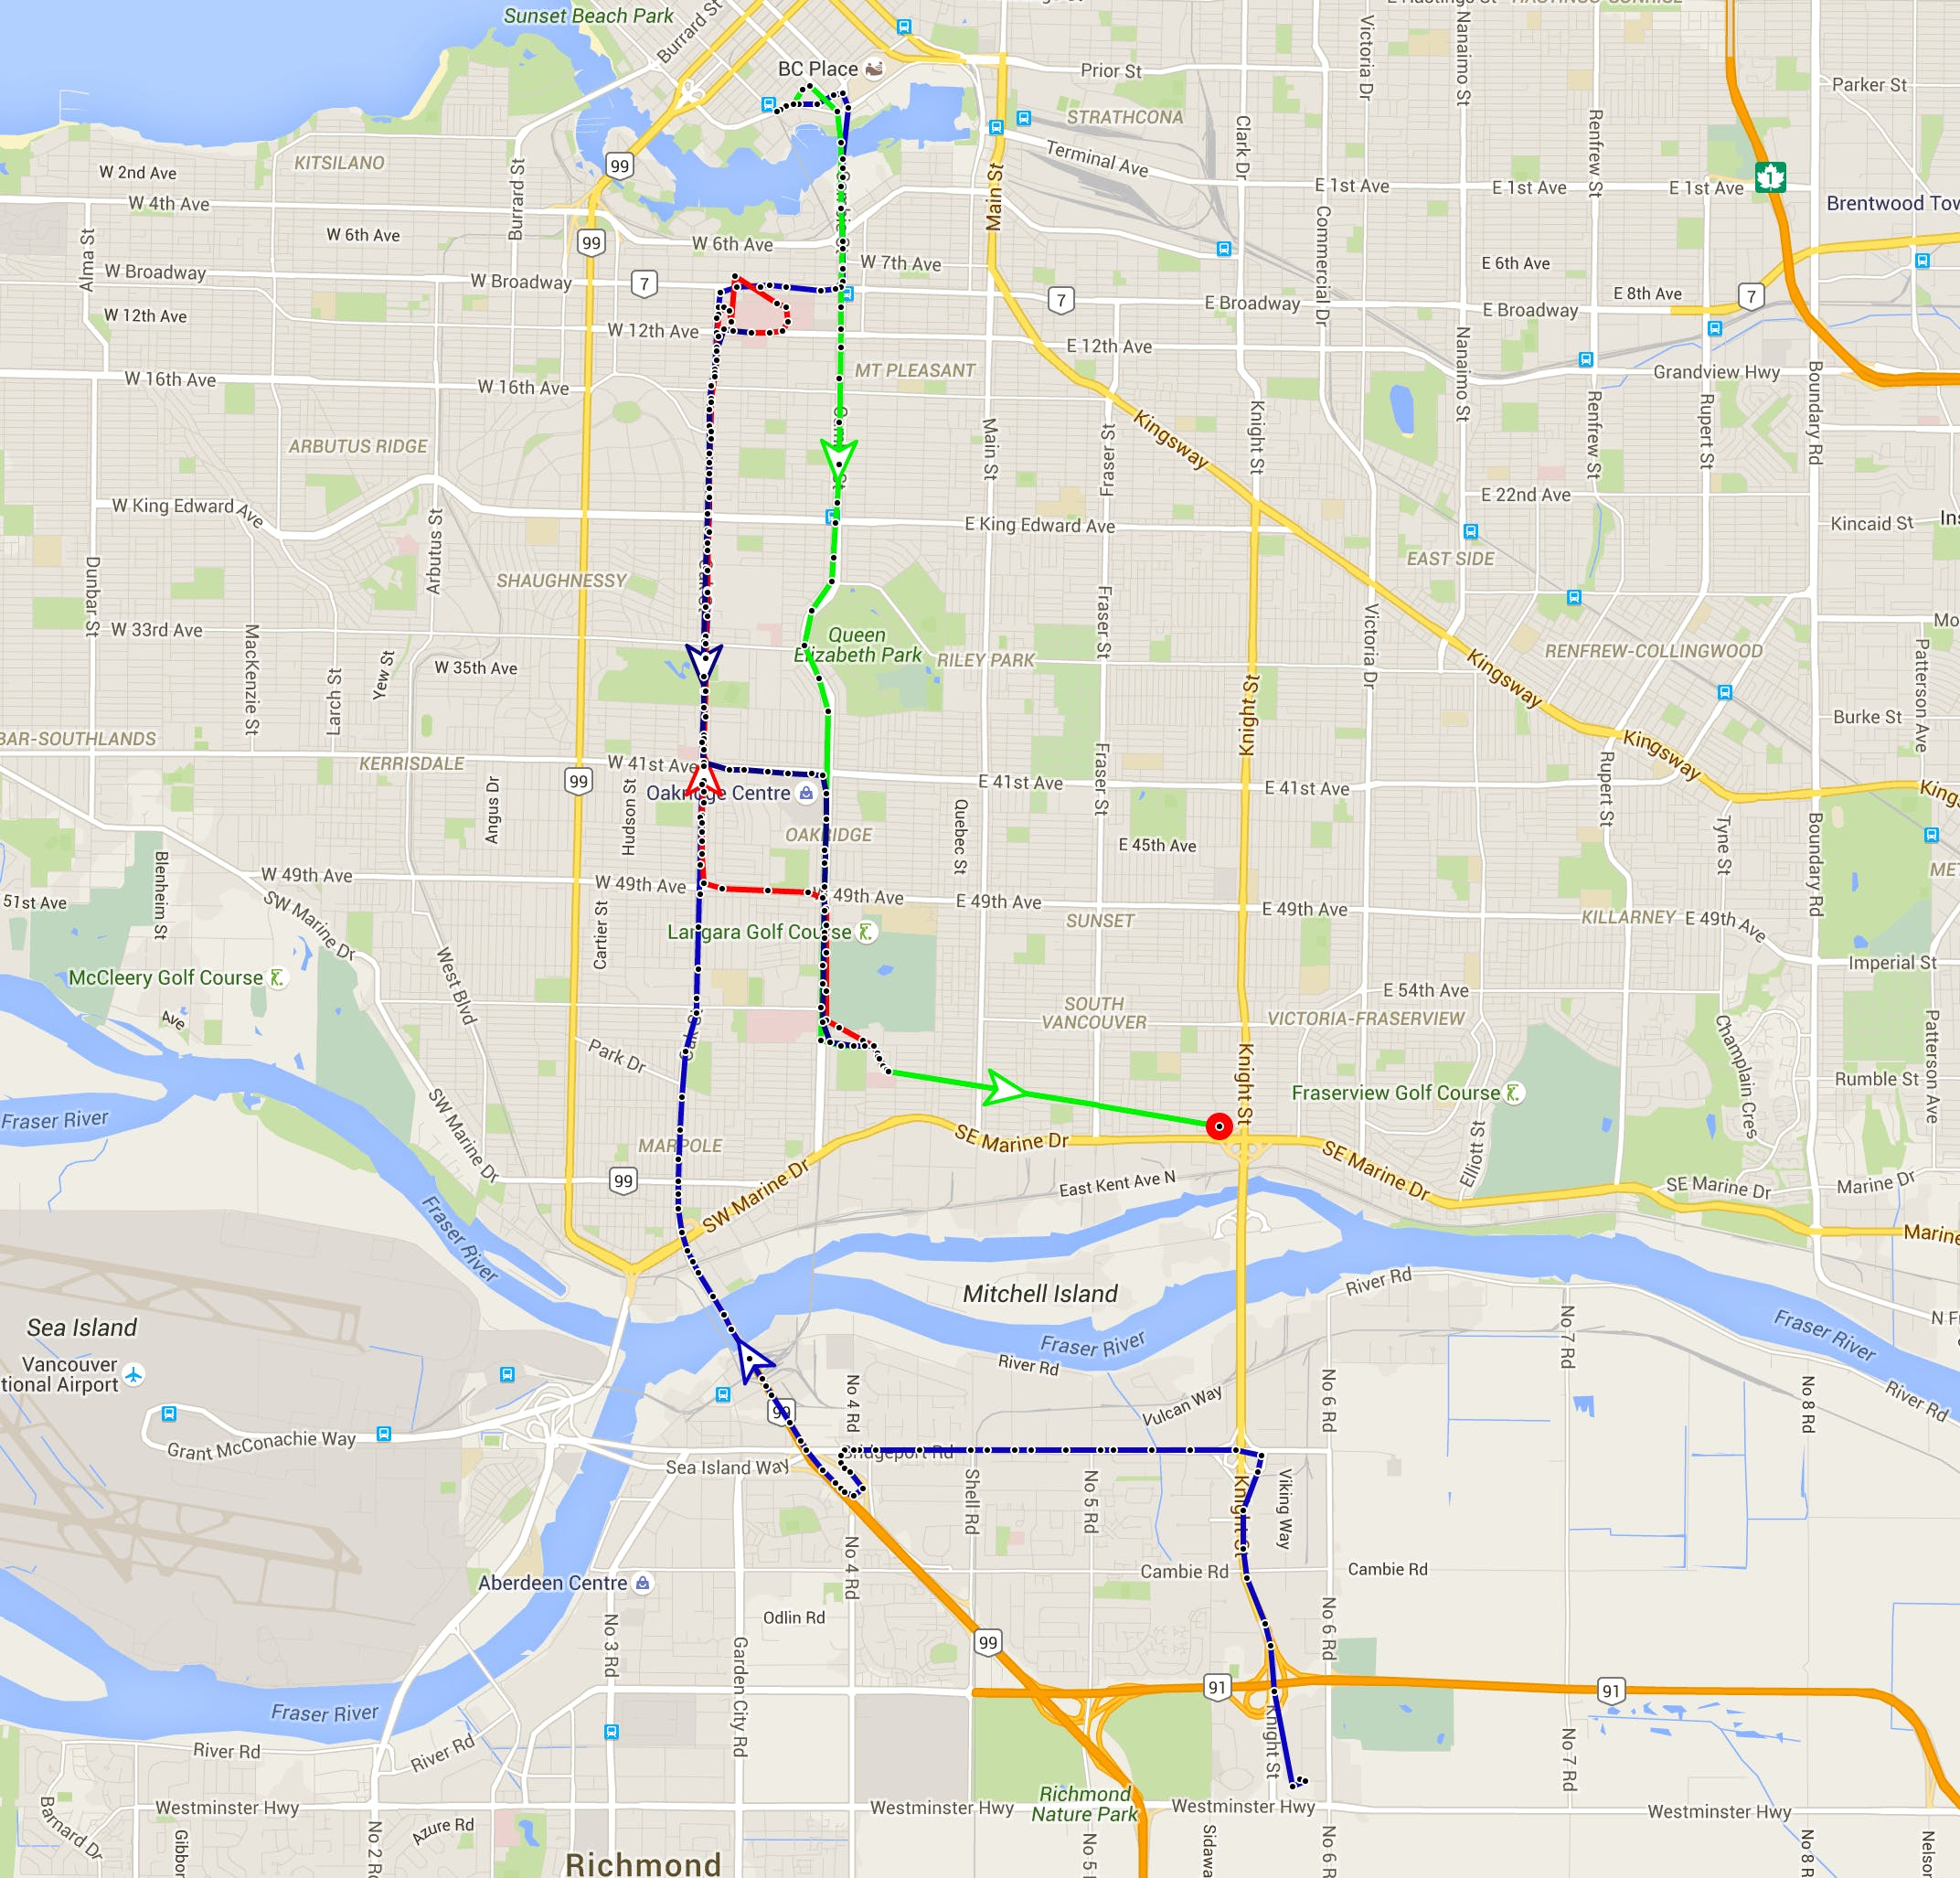 map sample with several day trips around the city